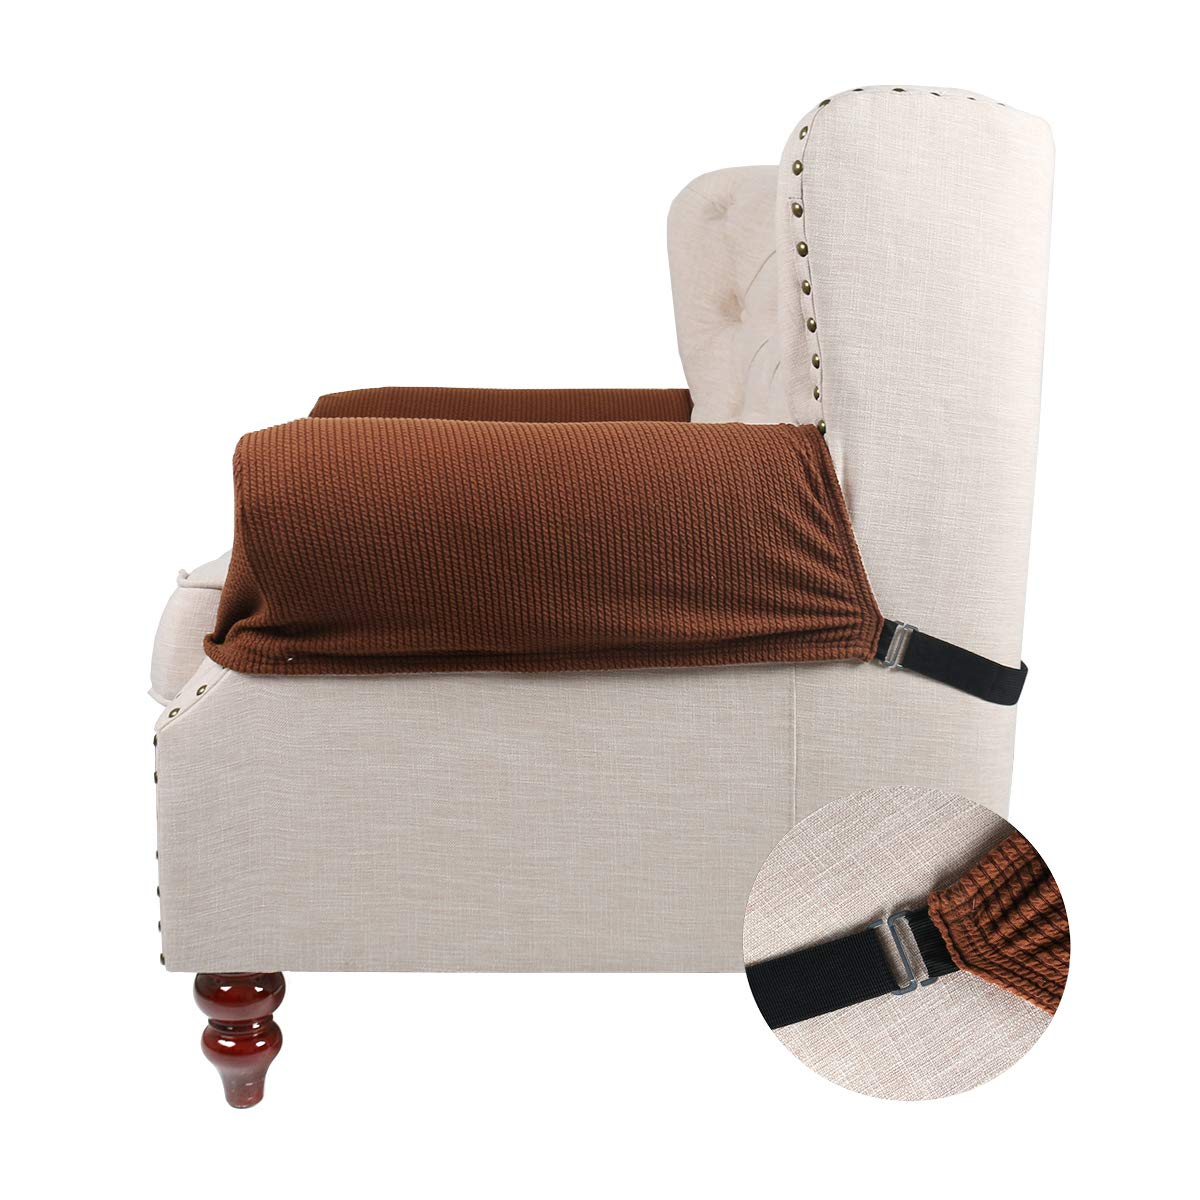 FlyingBean Stretch Couch Armrest Covers for Both Fabric and Leather Chair/Loveseat/Sofa/Recliner, Set of 2 with Adjustable Tapes(Coffee) by FlyingBean